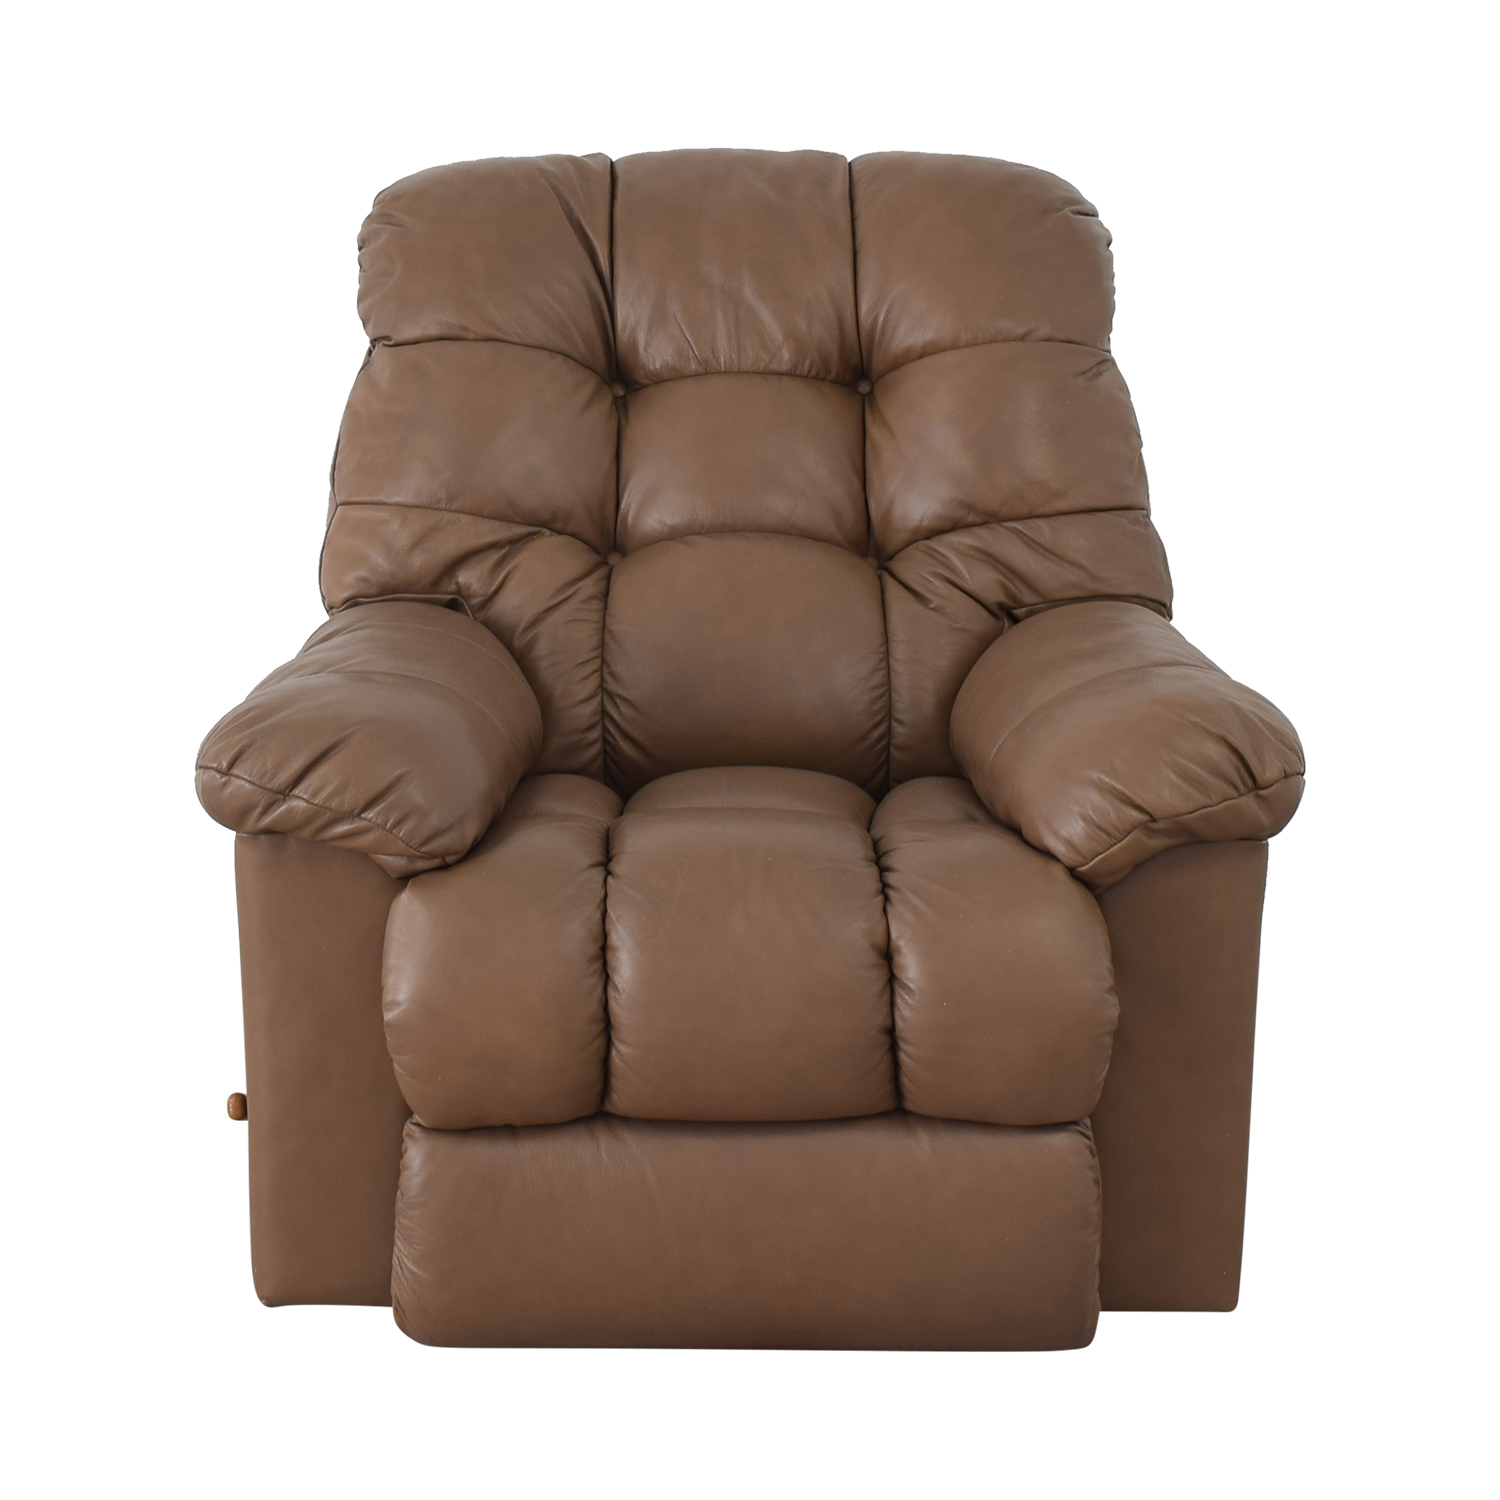 La-Z-Boy Gibson Recliner sale